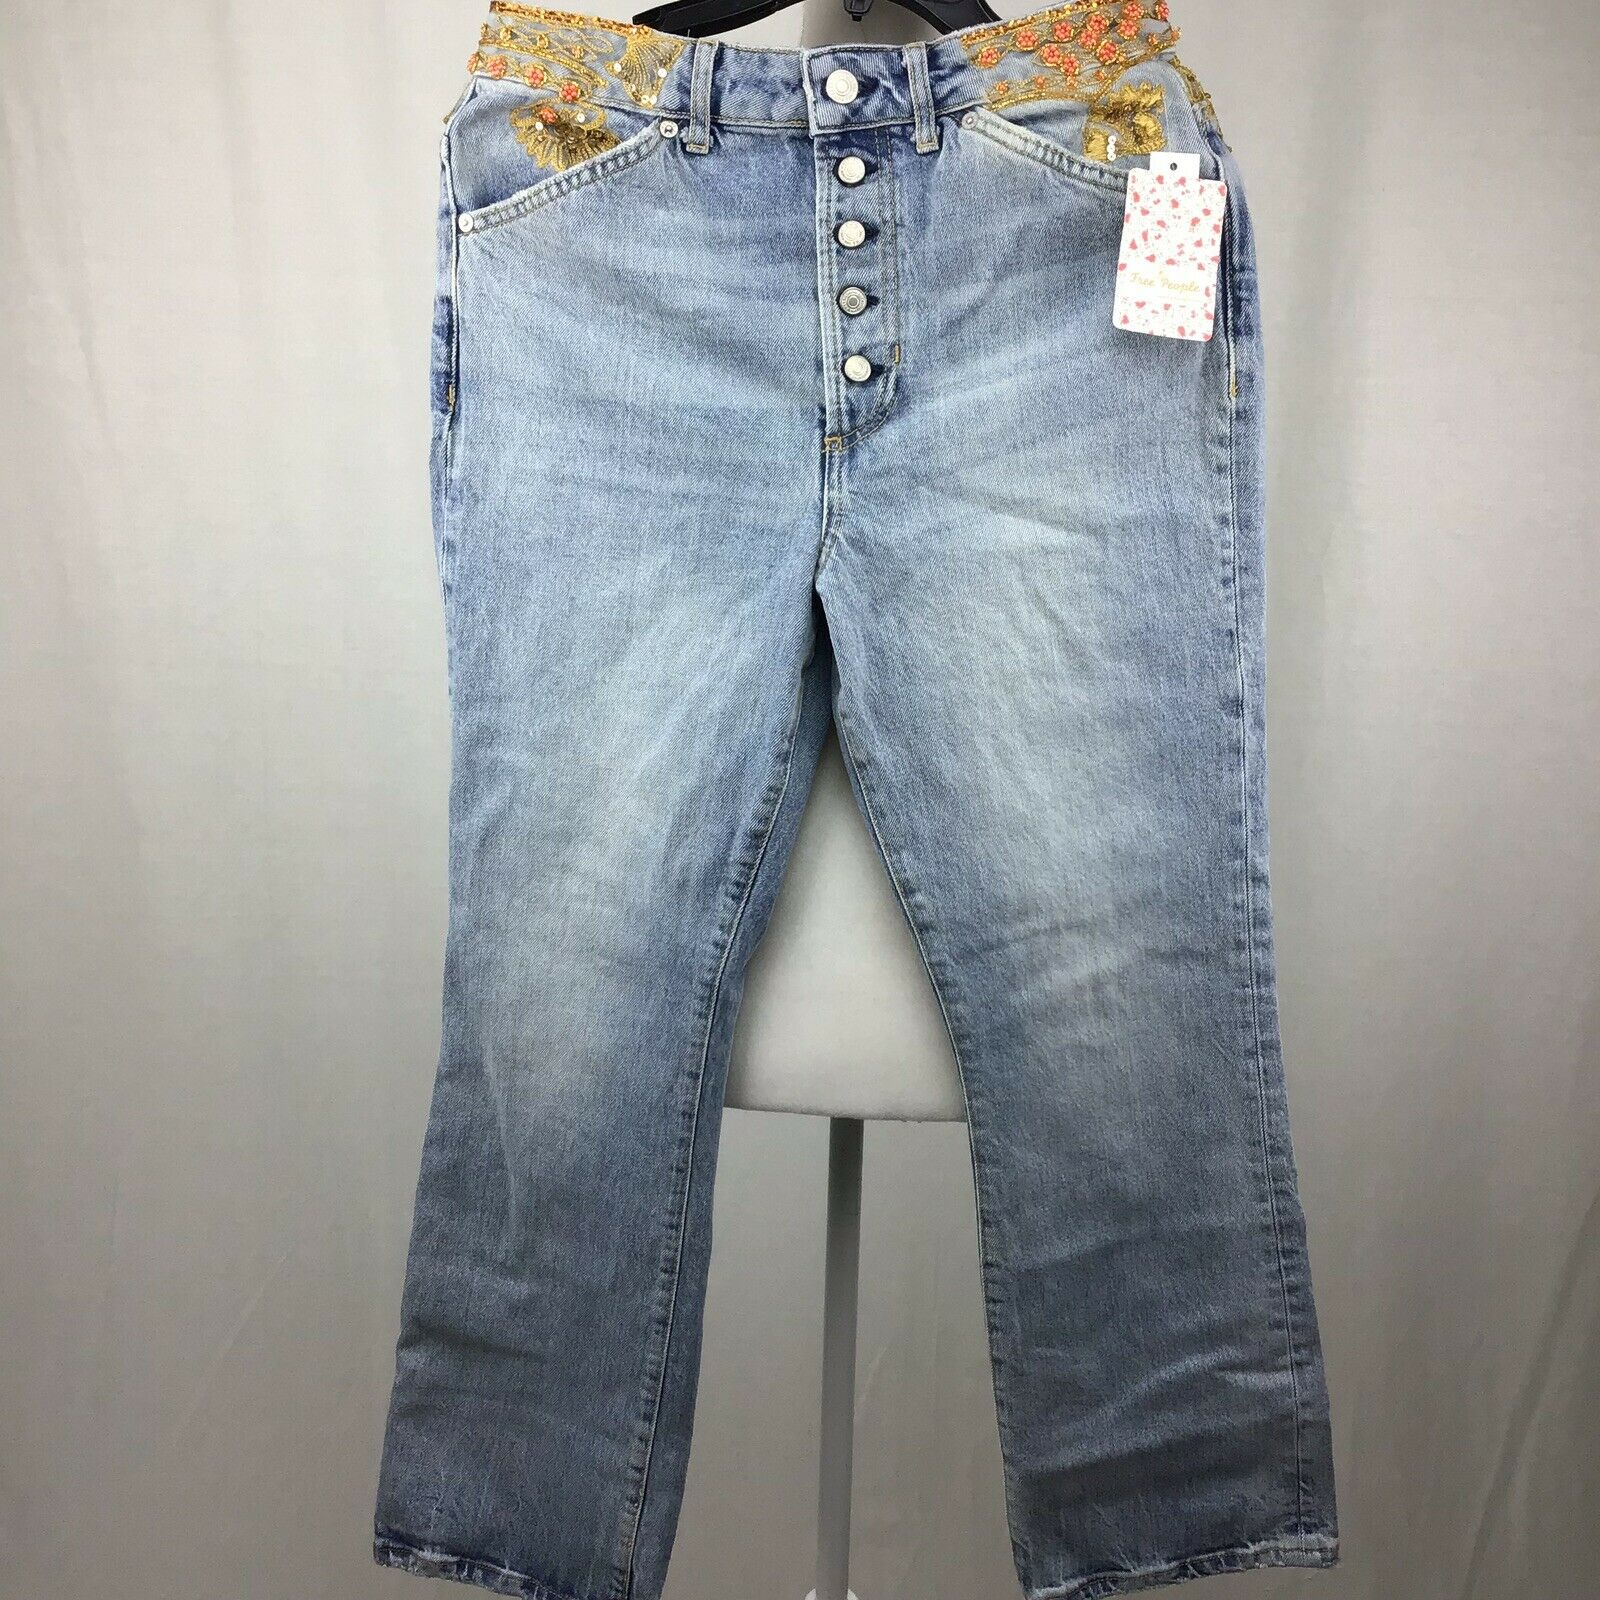 Free People Ripped Embellished Button-Fly Women Jeans bluee Size 29 B0067